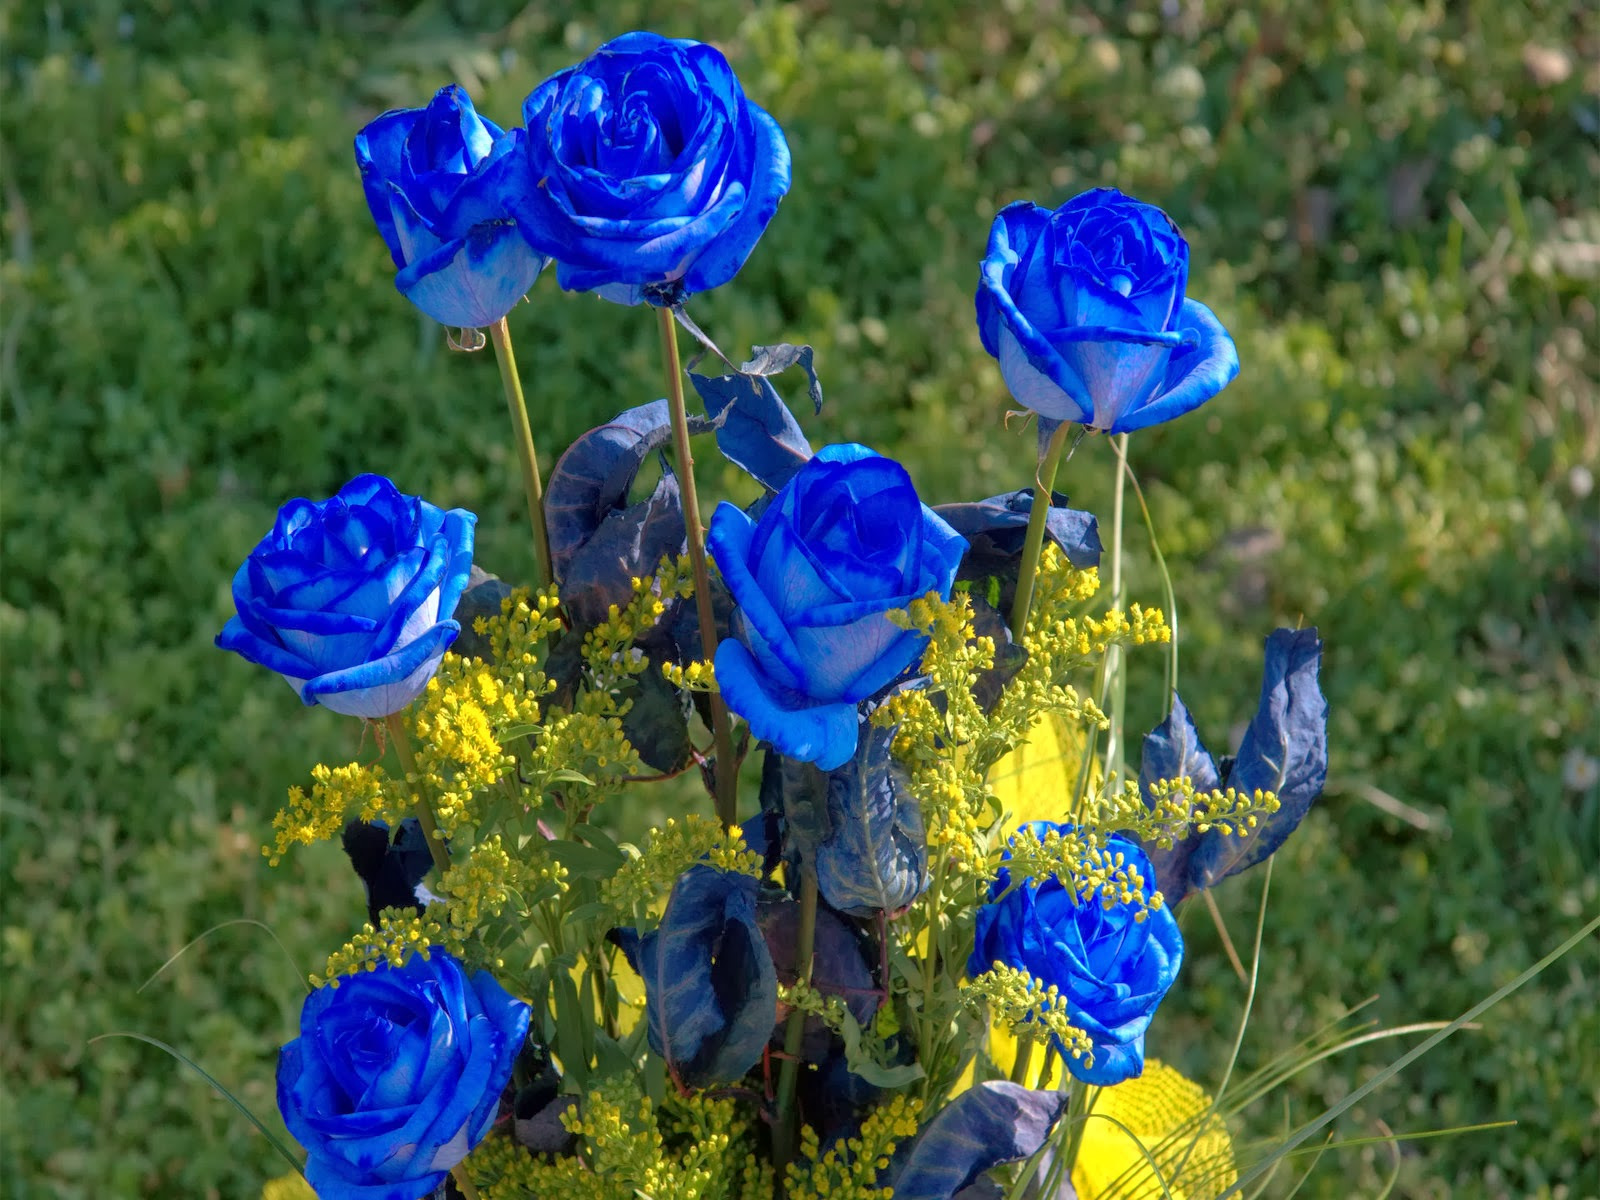 photo gallery : blue rose ~ hd flower wallpaperphoto gallery